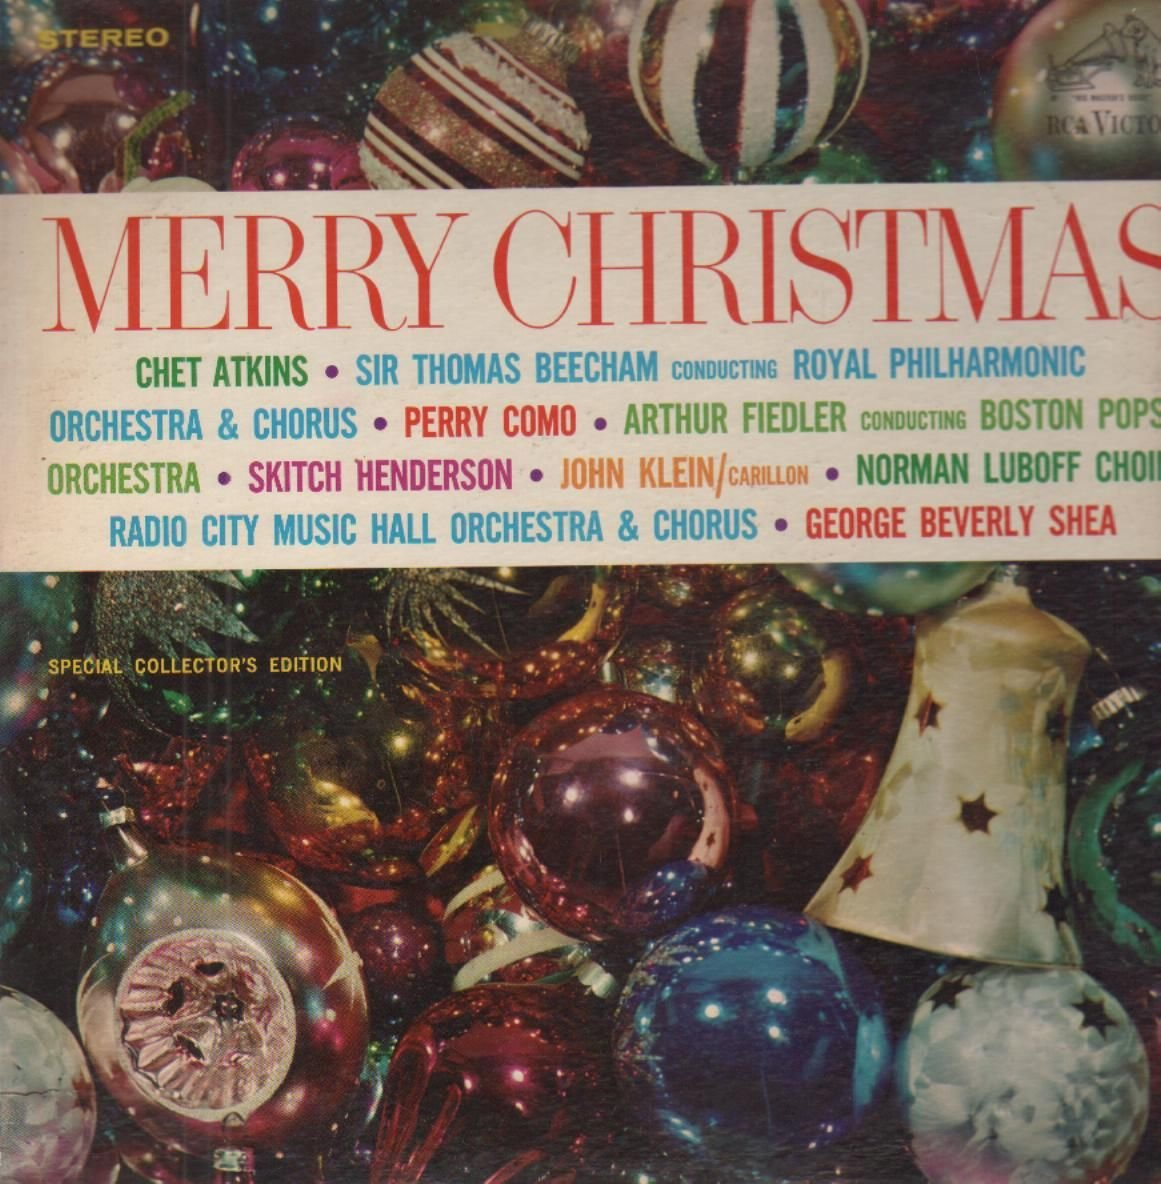 Perry como chet atkins george beverly shea merry christmas special collectors edition amazon com music